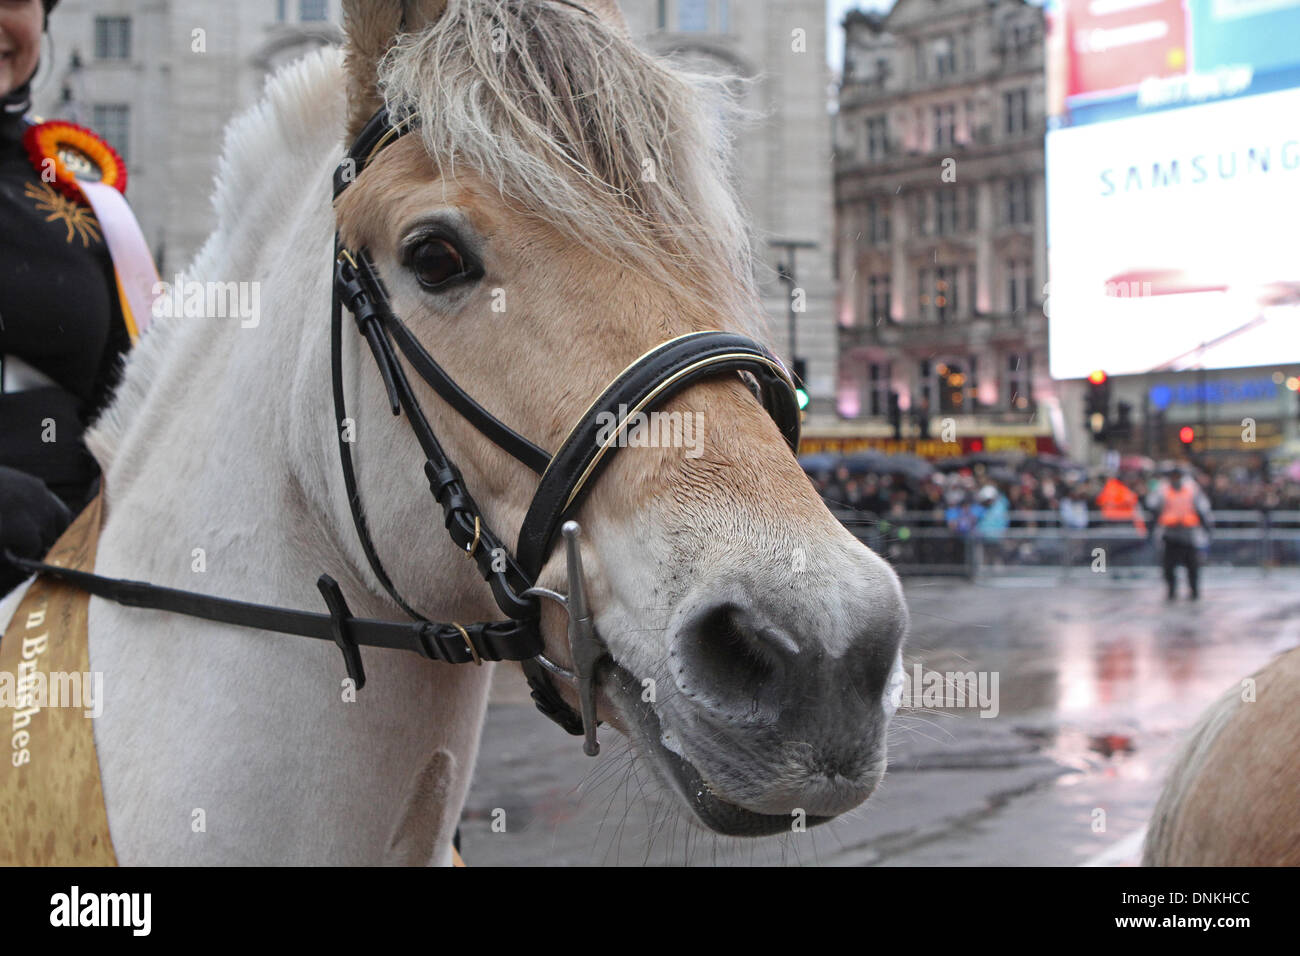 London,UK,1st January 2014,Horses joined the London's New Year's Day Parade 2014 Credit: Keith Larby/Alamy Live News - Stock Image